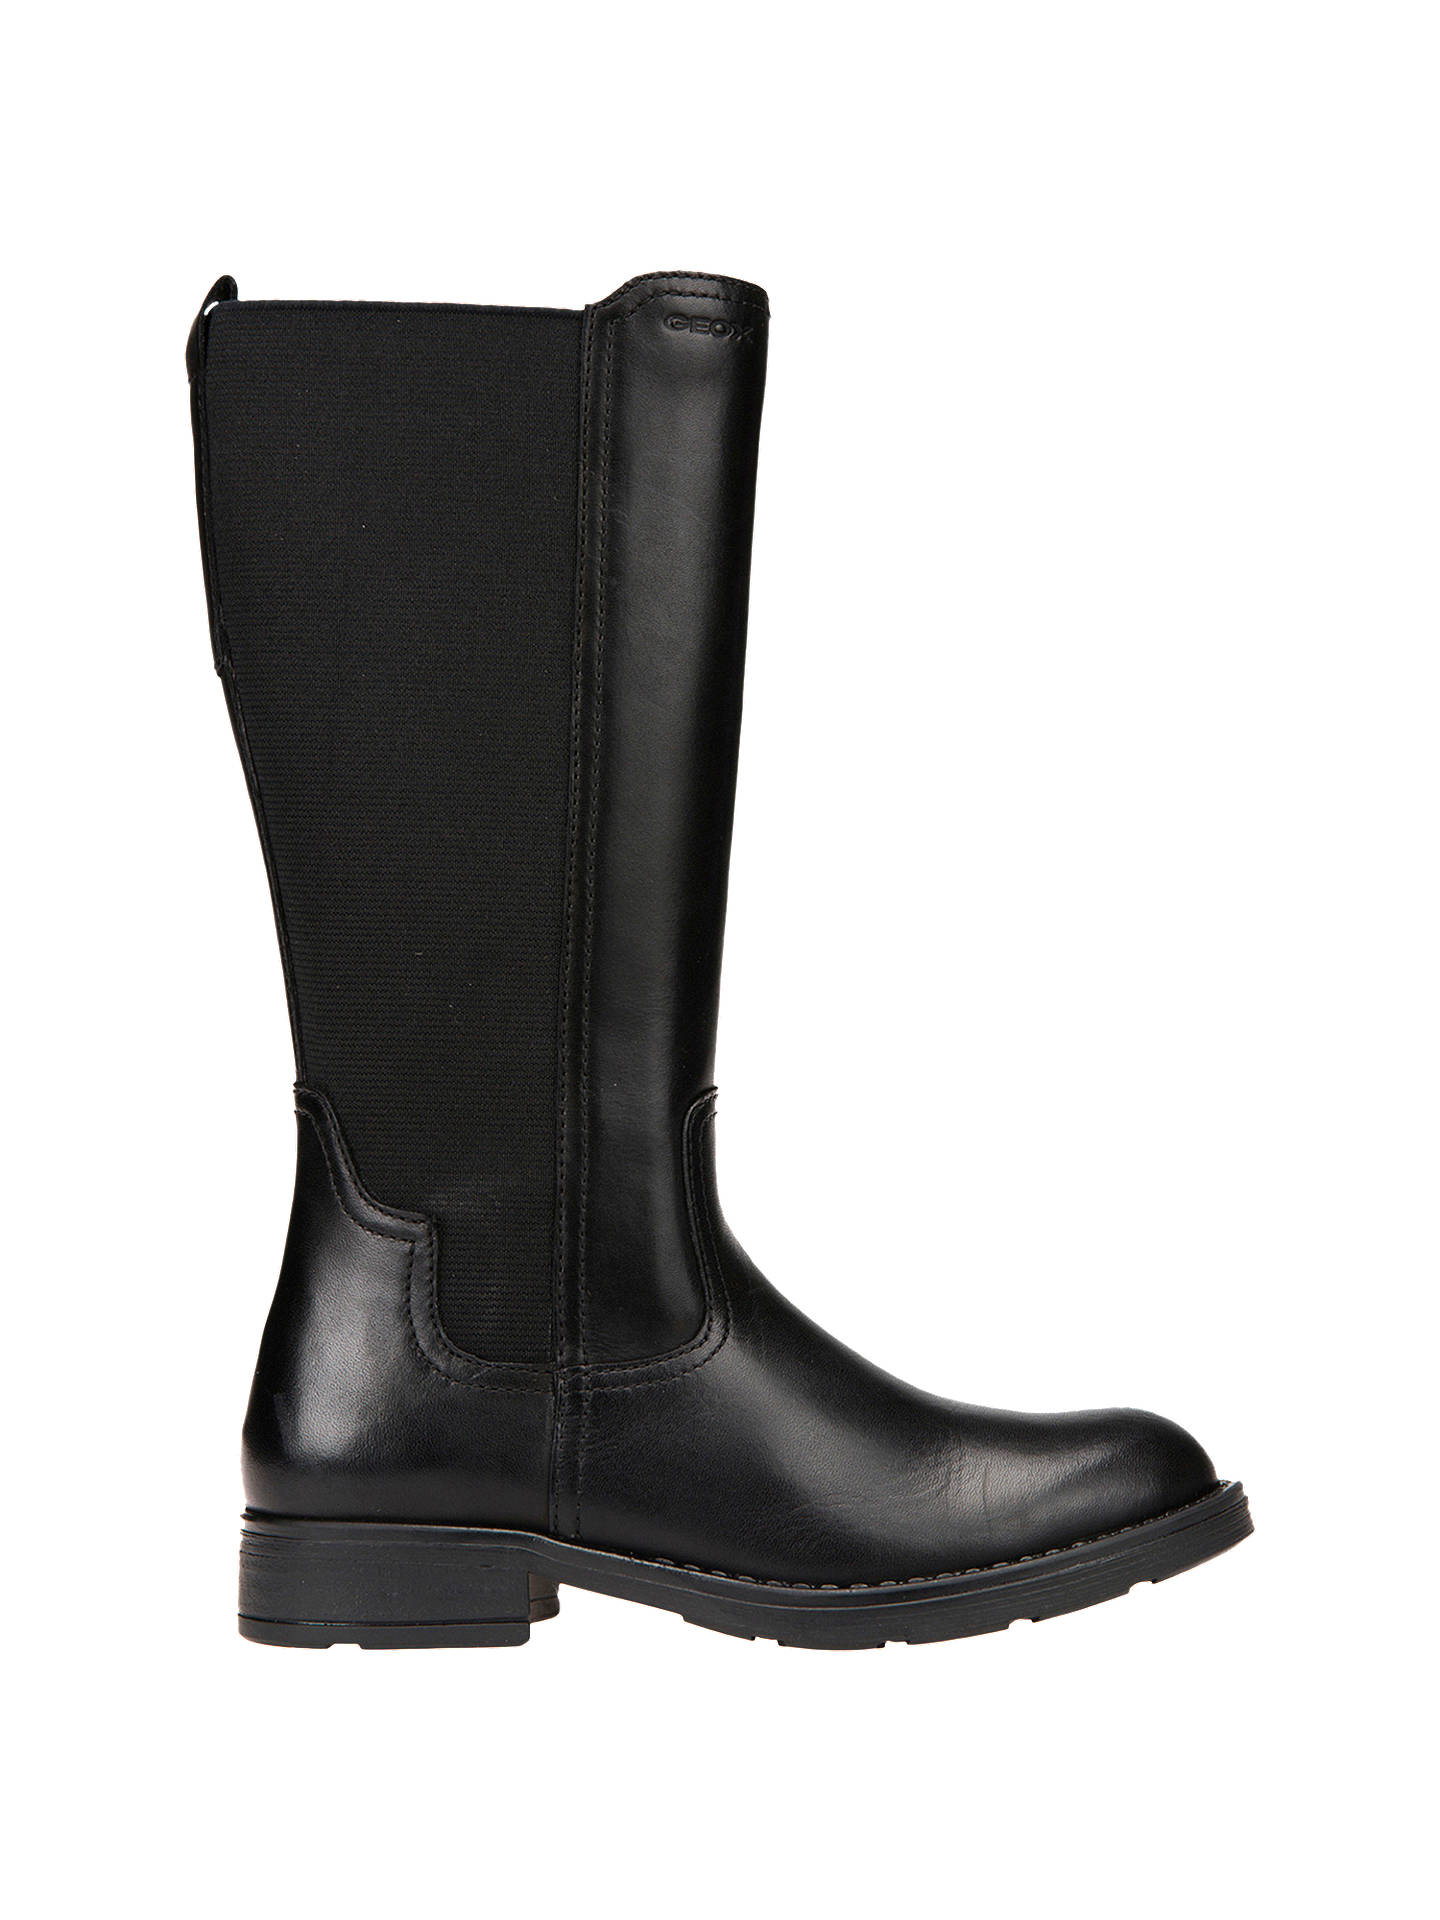 Geox Children's Sofia Leather Boots, Black at John Lewis